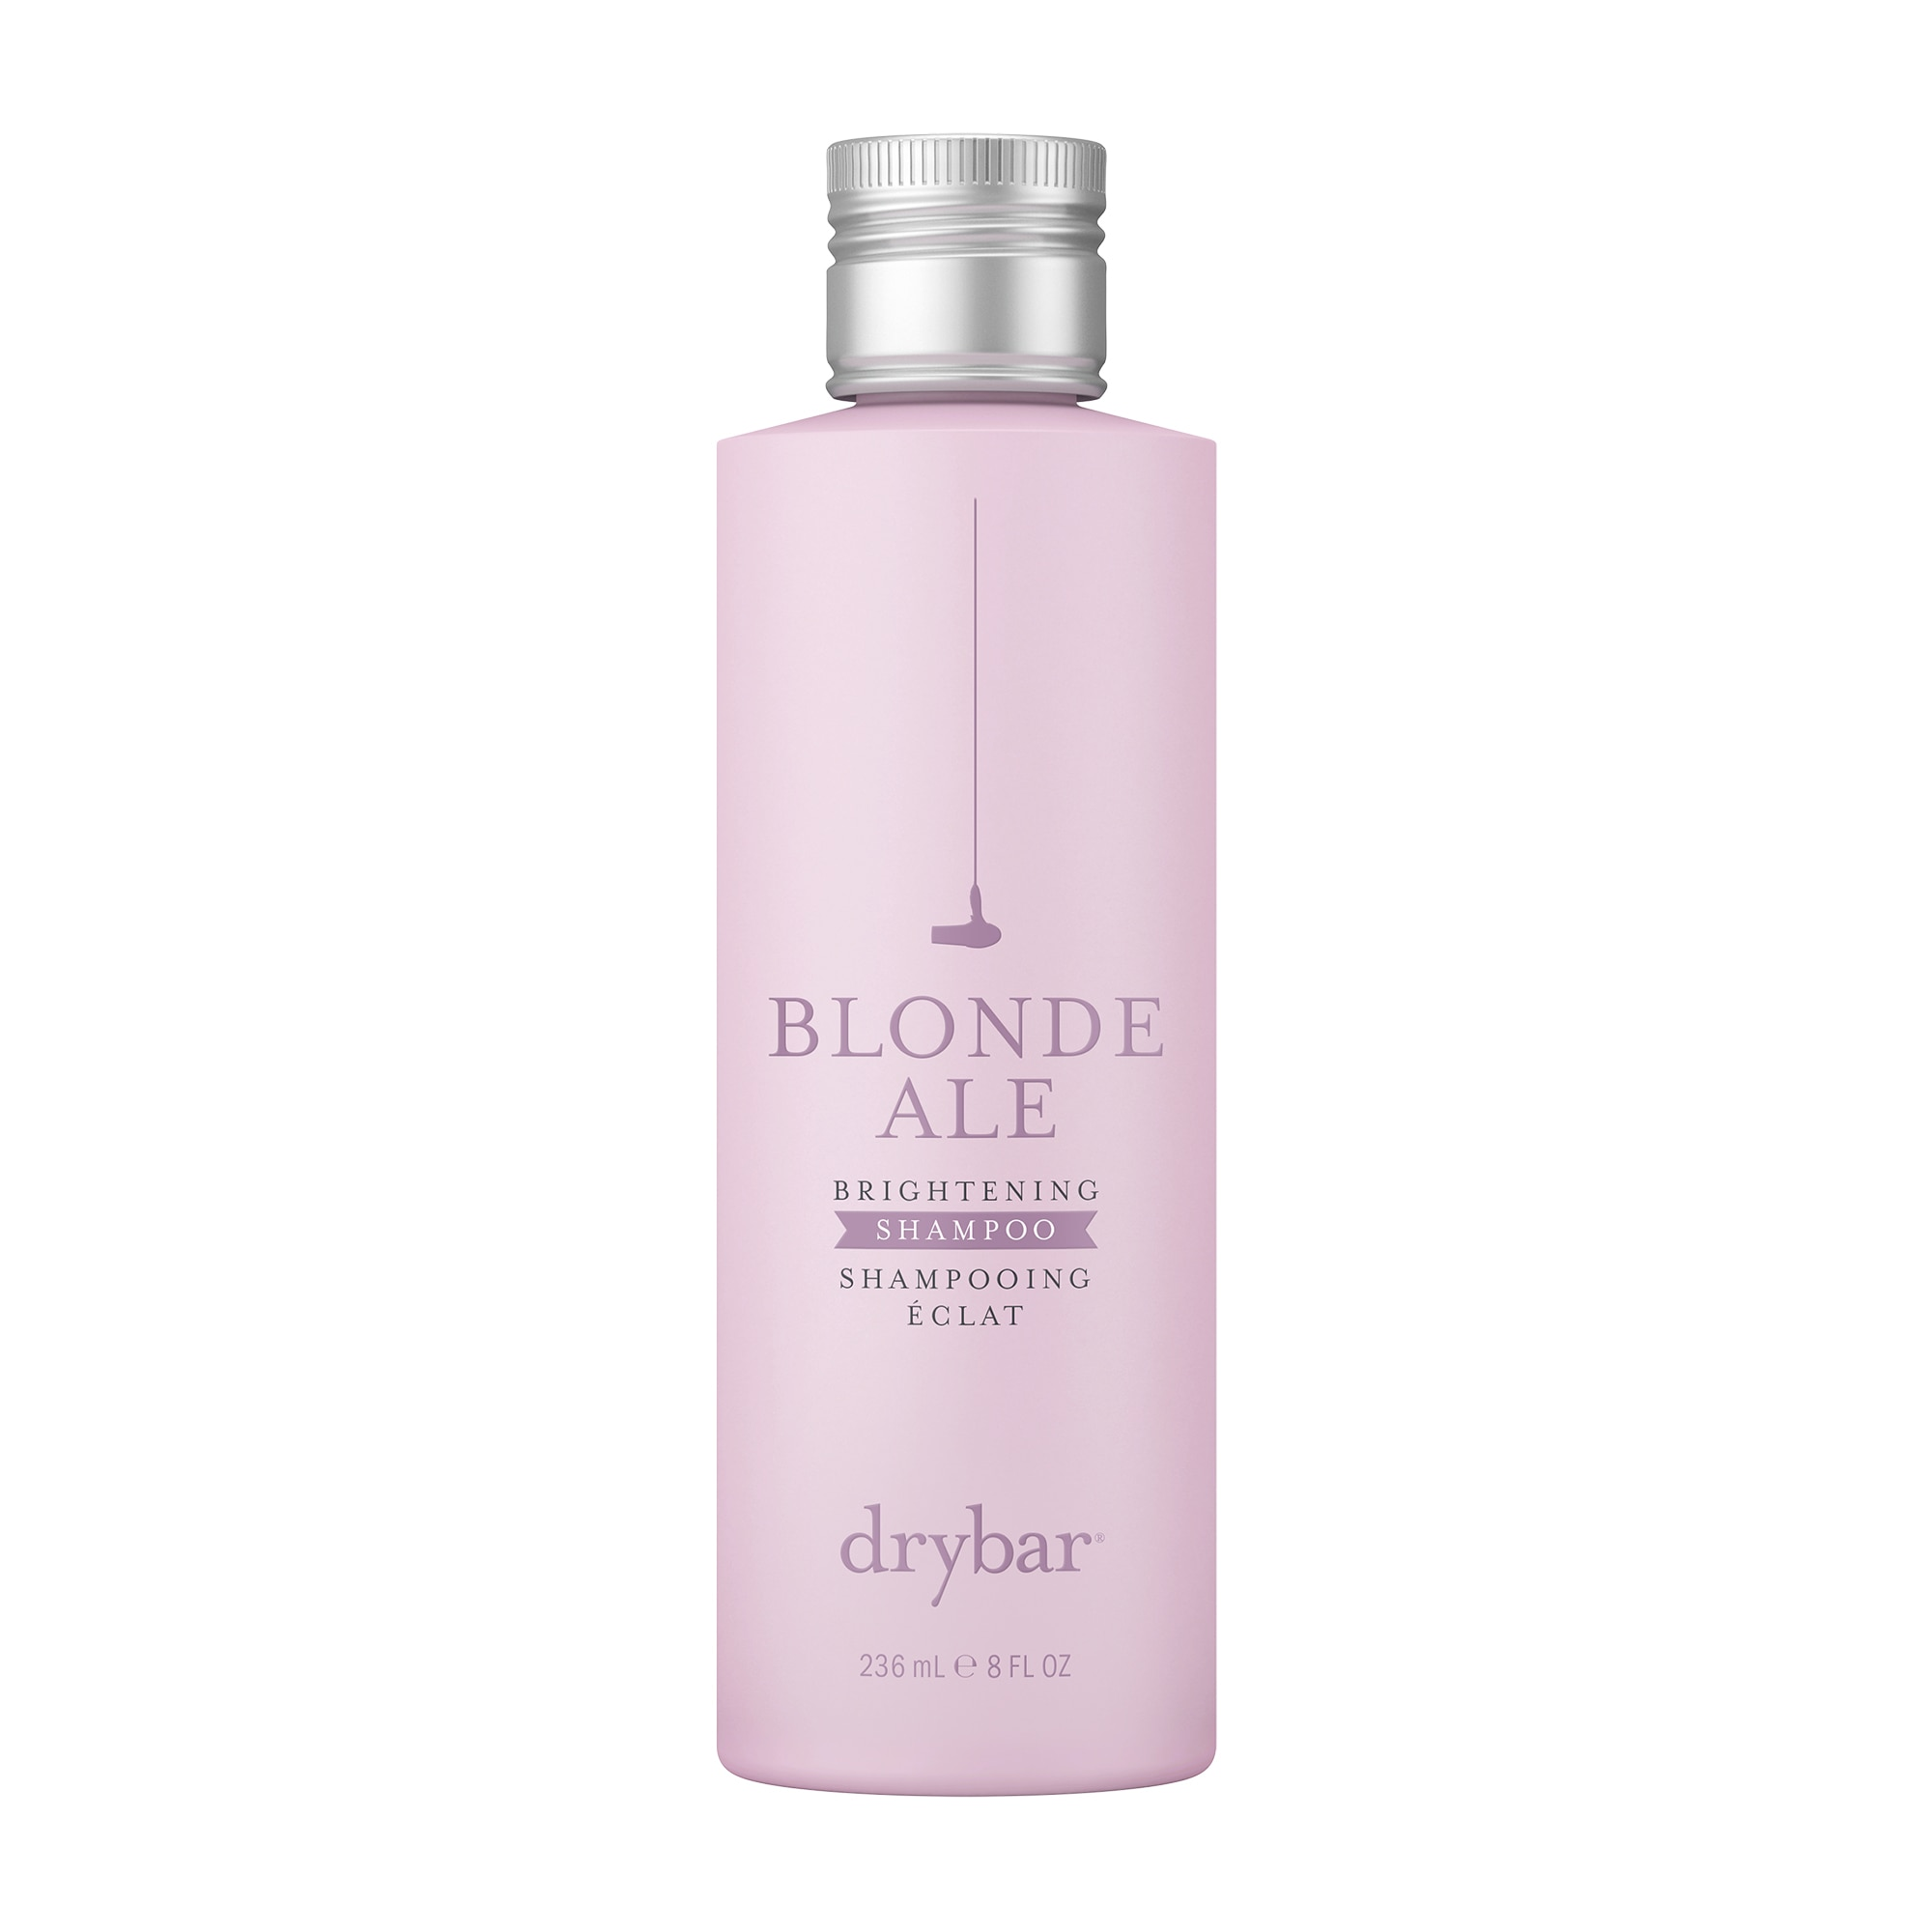 BLONDE ALE BRIGHTENING SHAMPOO